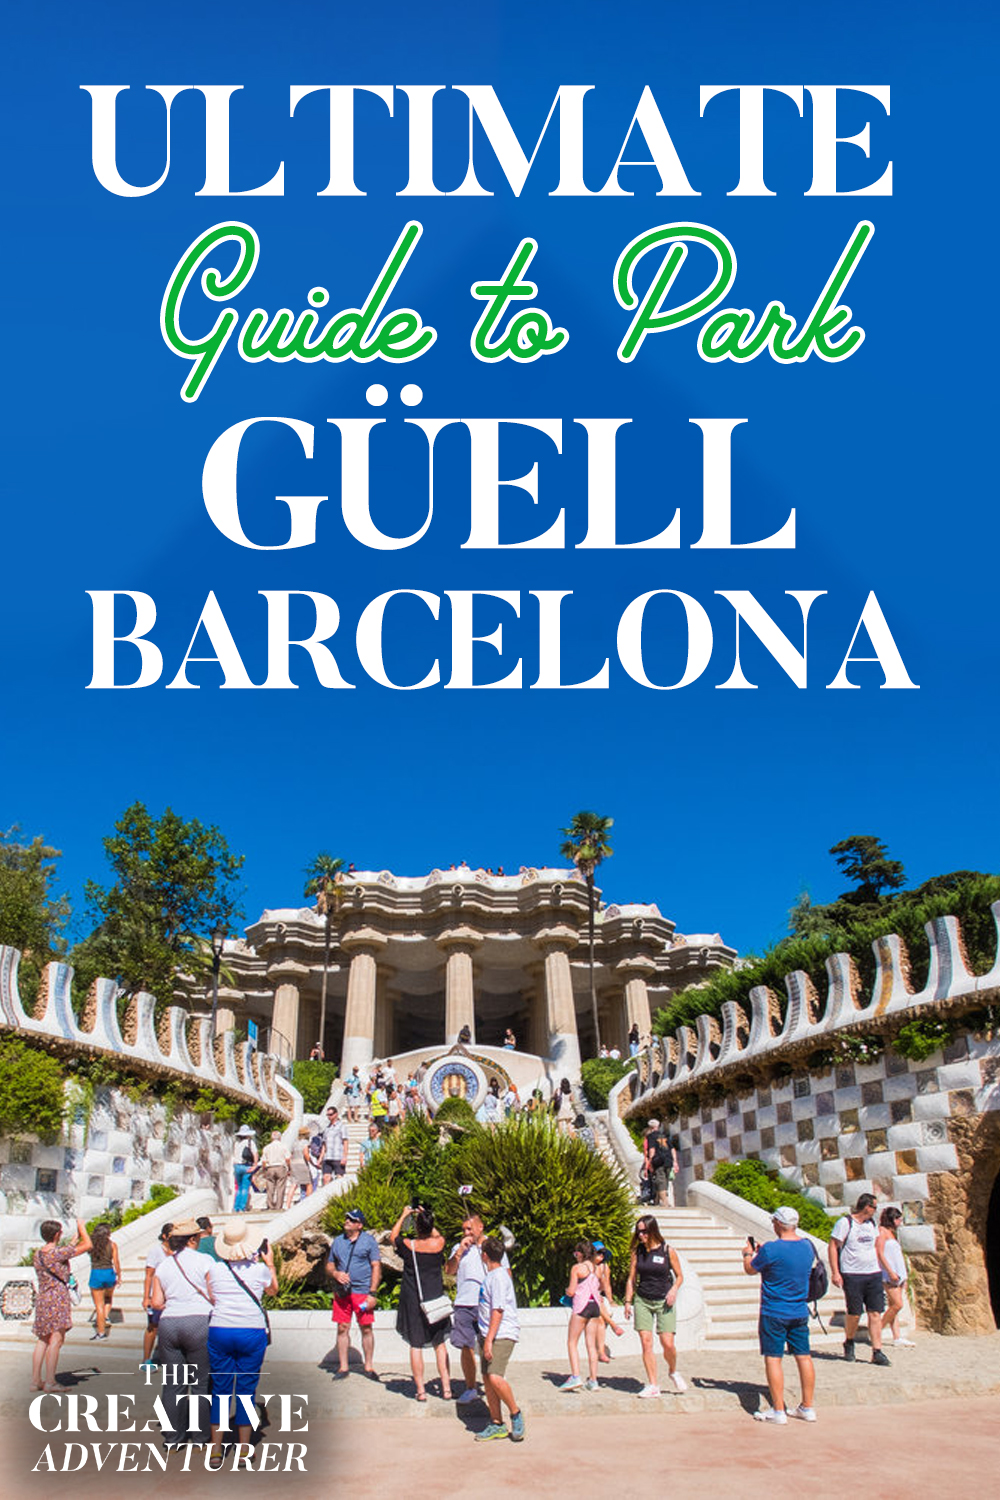 ULTIMATE Guide to Park Güell Barcelona